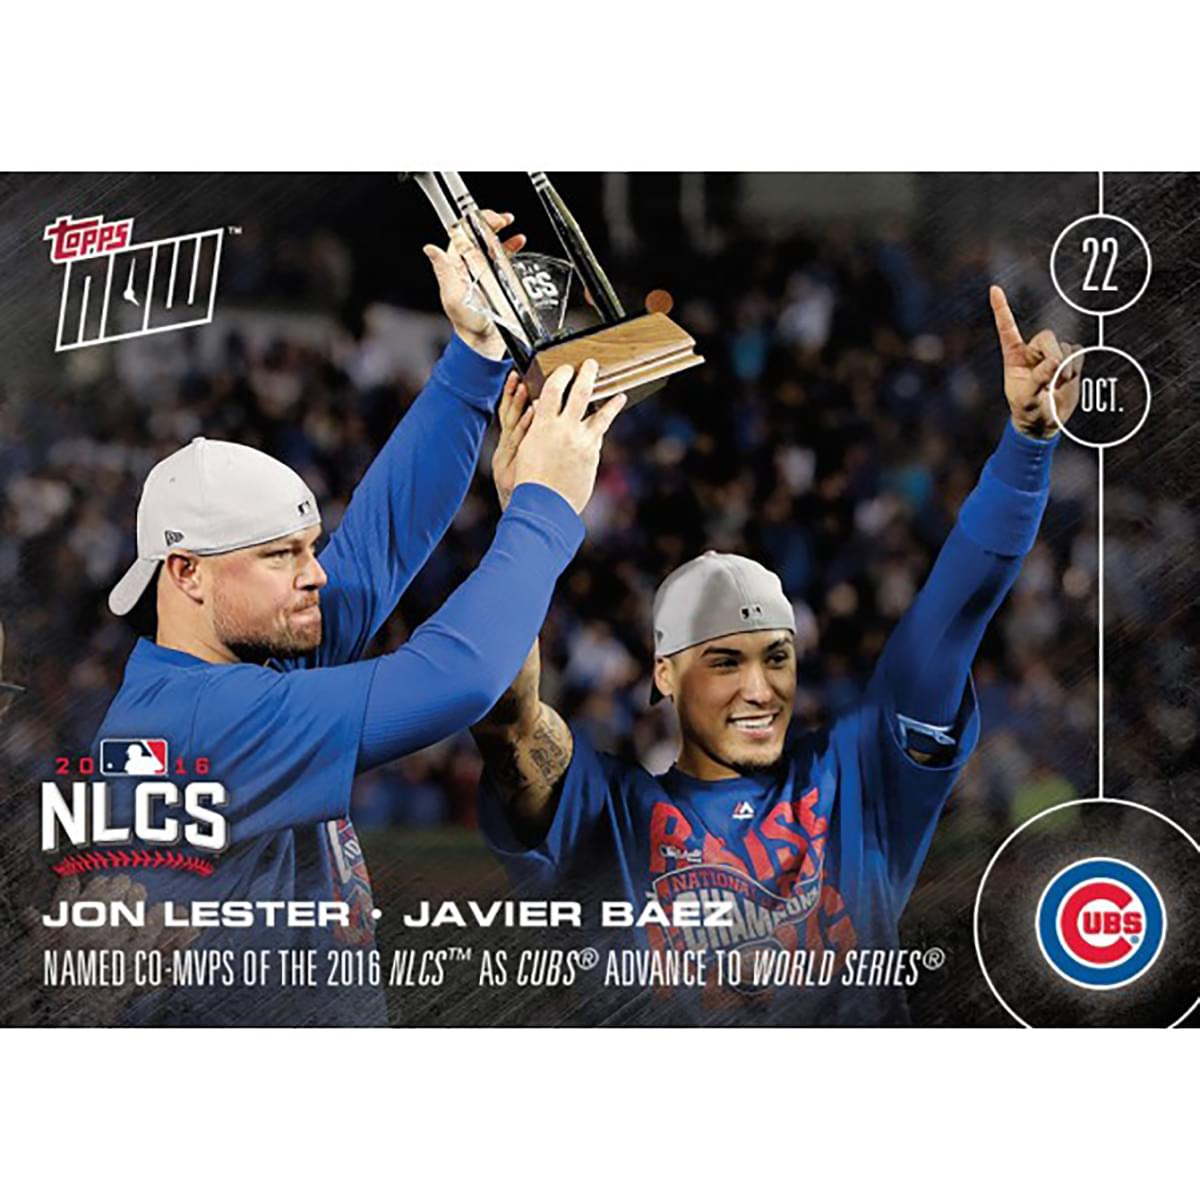 MLB Chicago Cubs Javier Baez/ Jon Lester #617 2016 Topps NOW Trading Card